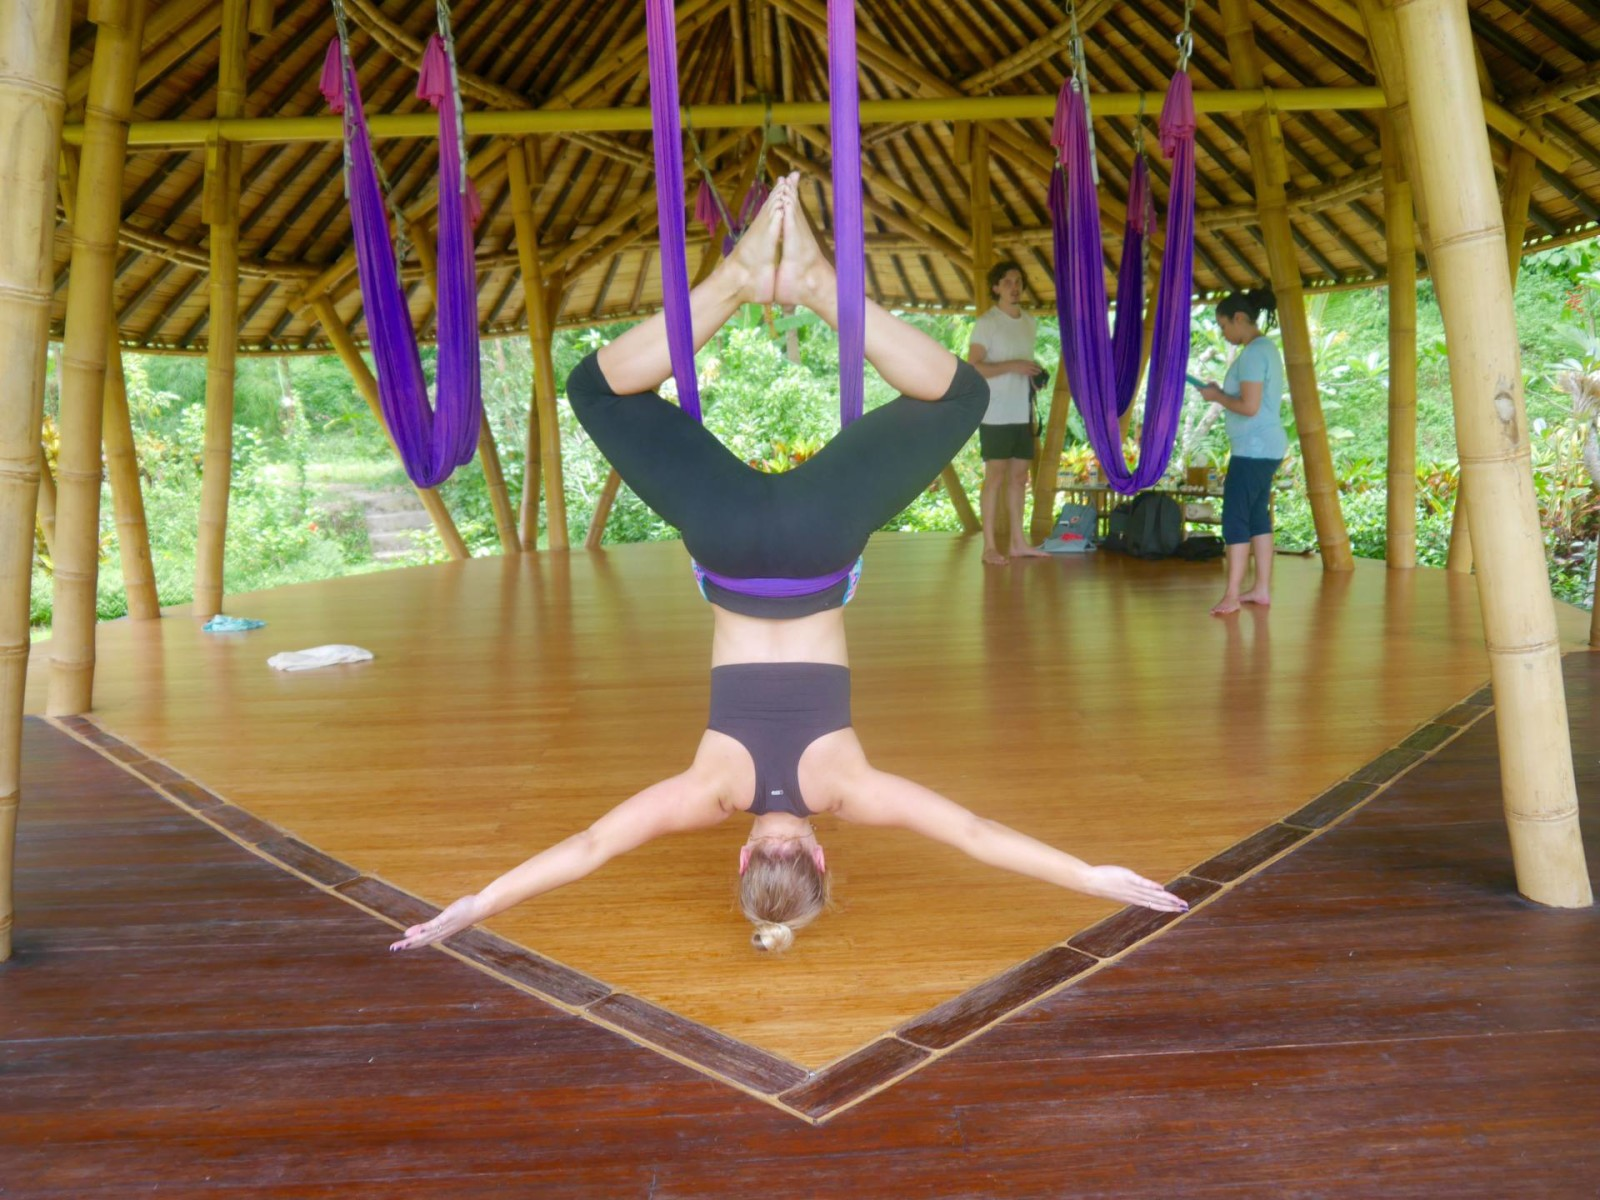 sayan-ubud-bali-anti-gravity-yoga-the-travelista-jess-gibson